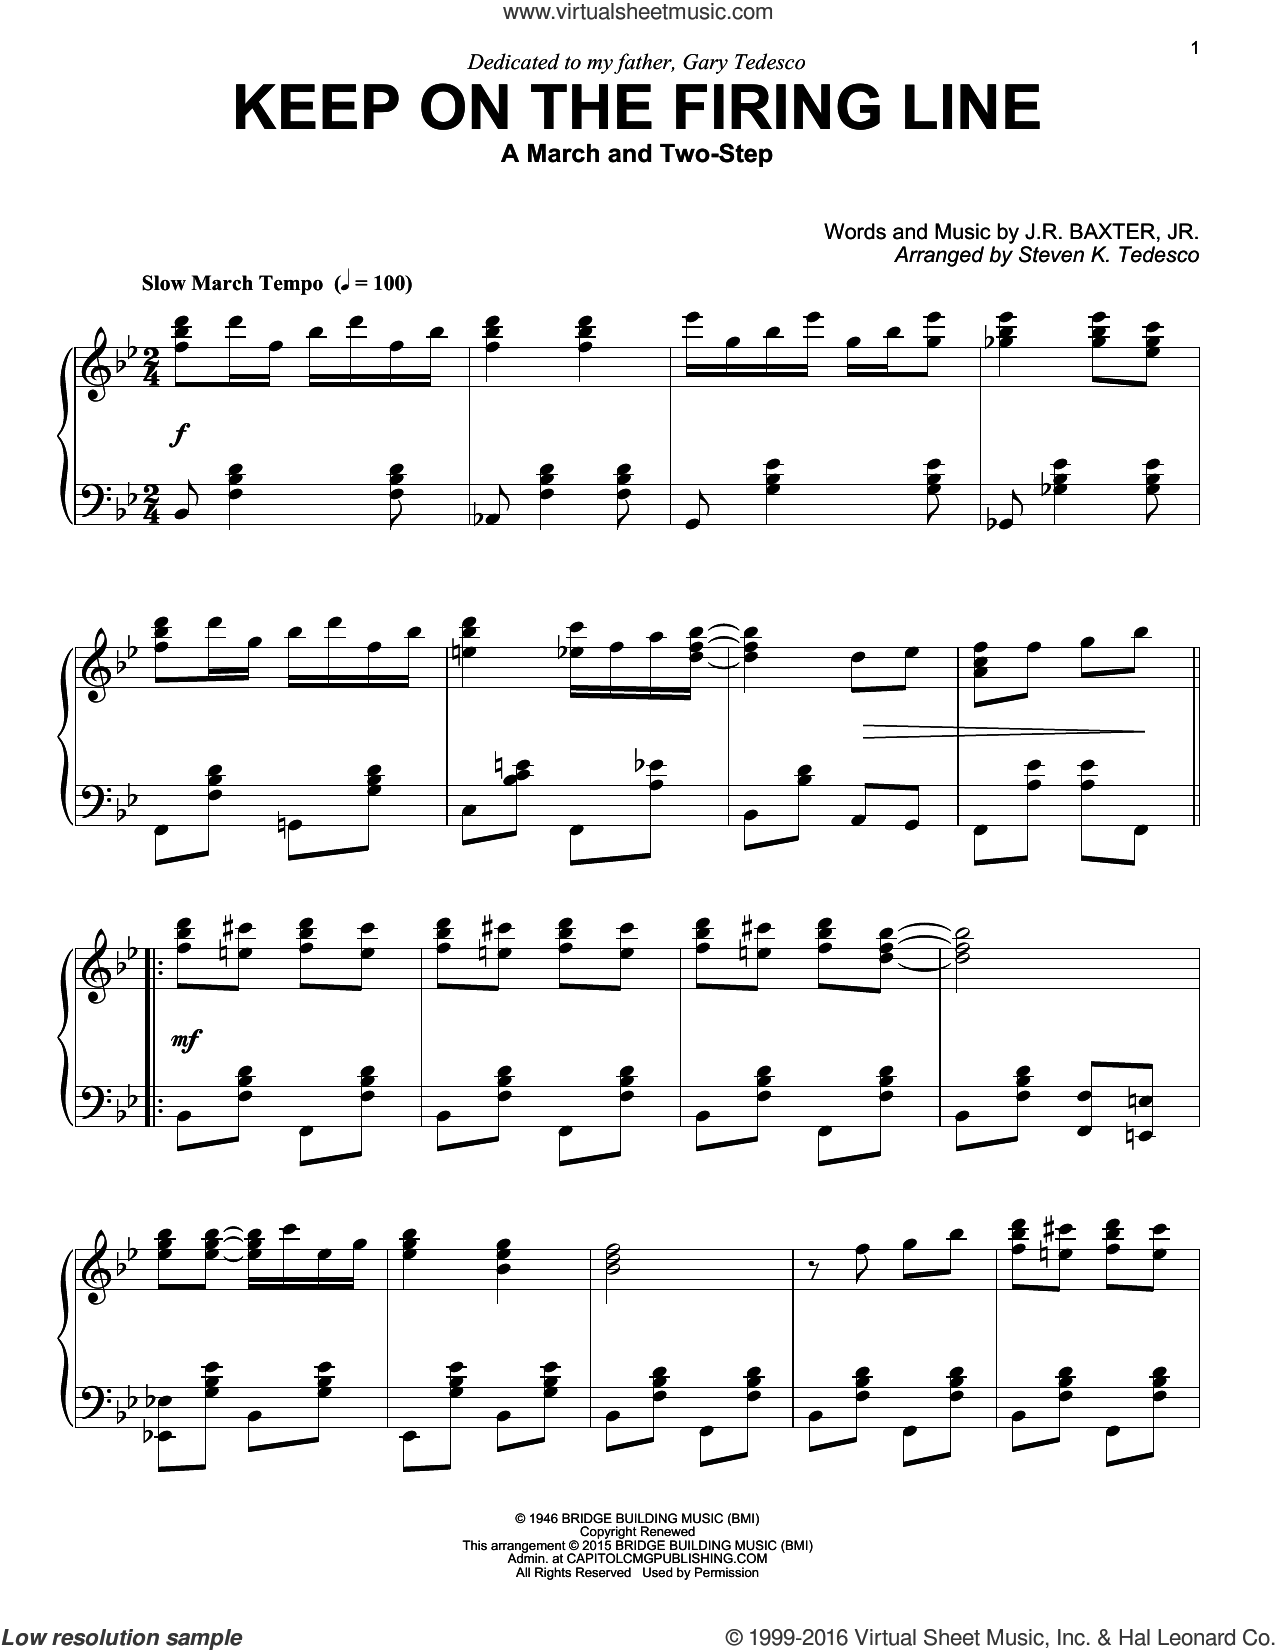 Keep On The Firing Line sheet music for piano solo by Steven K. Tedesco and J.R. Baxter Jr., intermediate